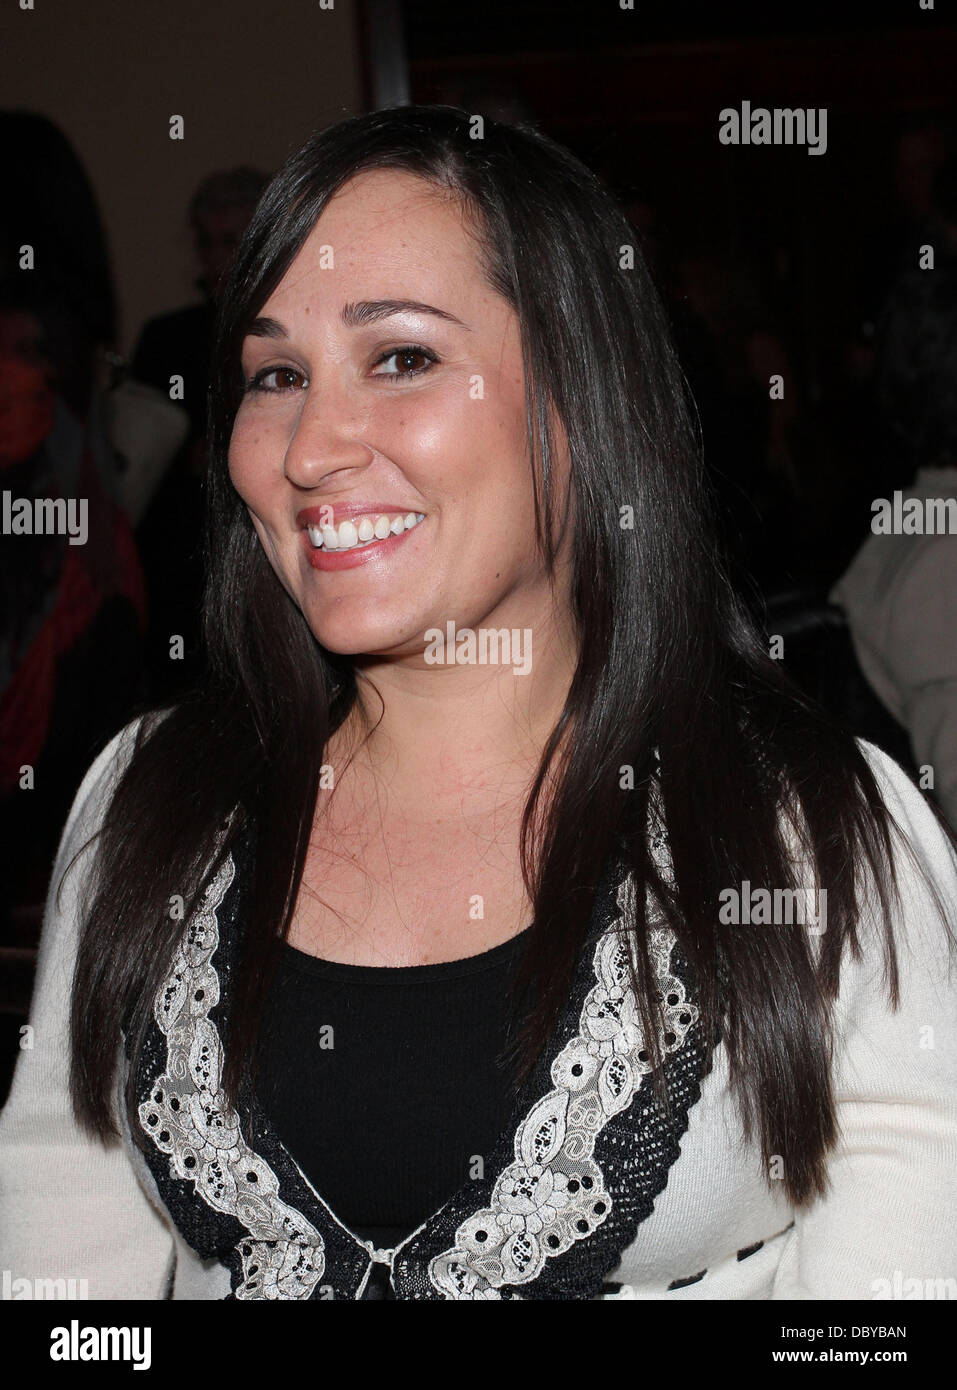 Meredith Eaton National Multiple Sclerosis Society's 37th annual Stock Photo. Royalty Free Image: 58993949 - Alamy